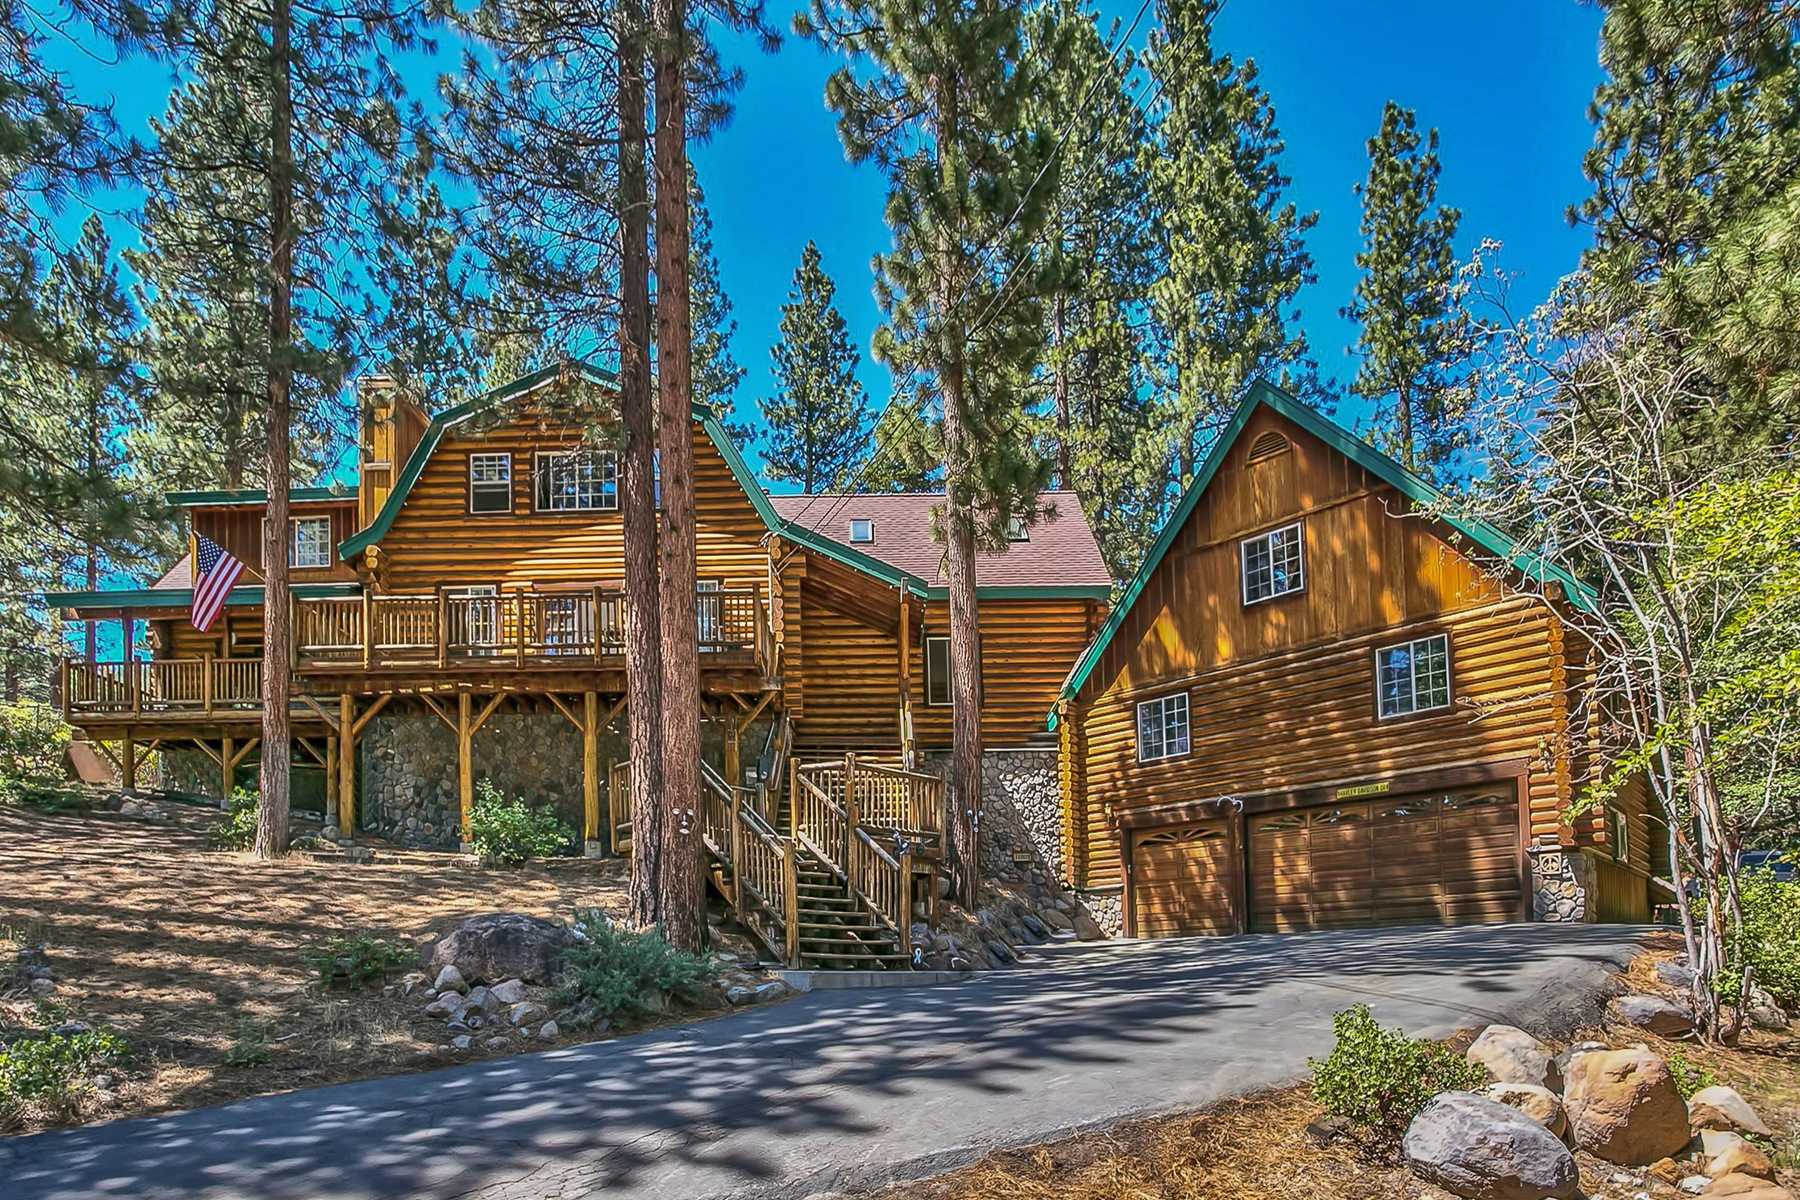 Single Family Home for Active at 428 Pat Court Incline Village, Nevada 89451 United States